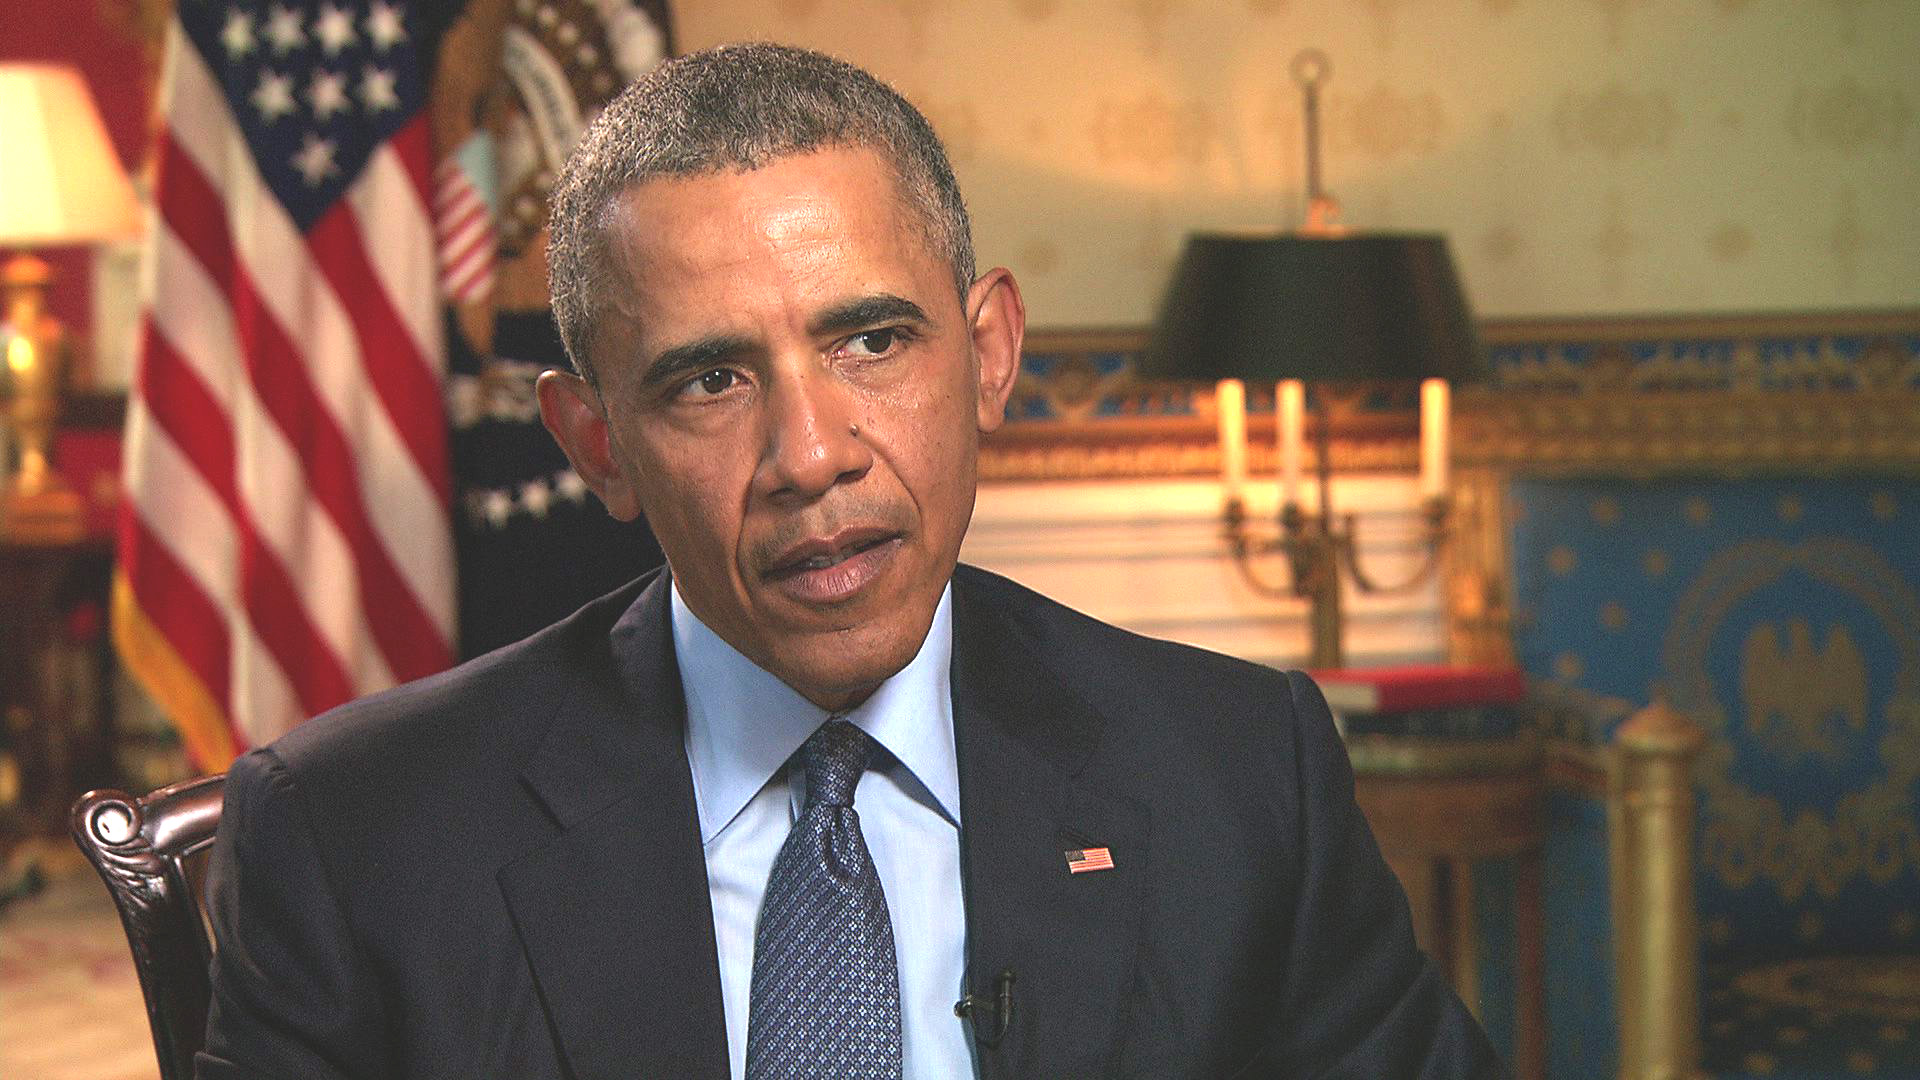 Obama reveals the one question every world leader asks him